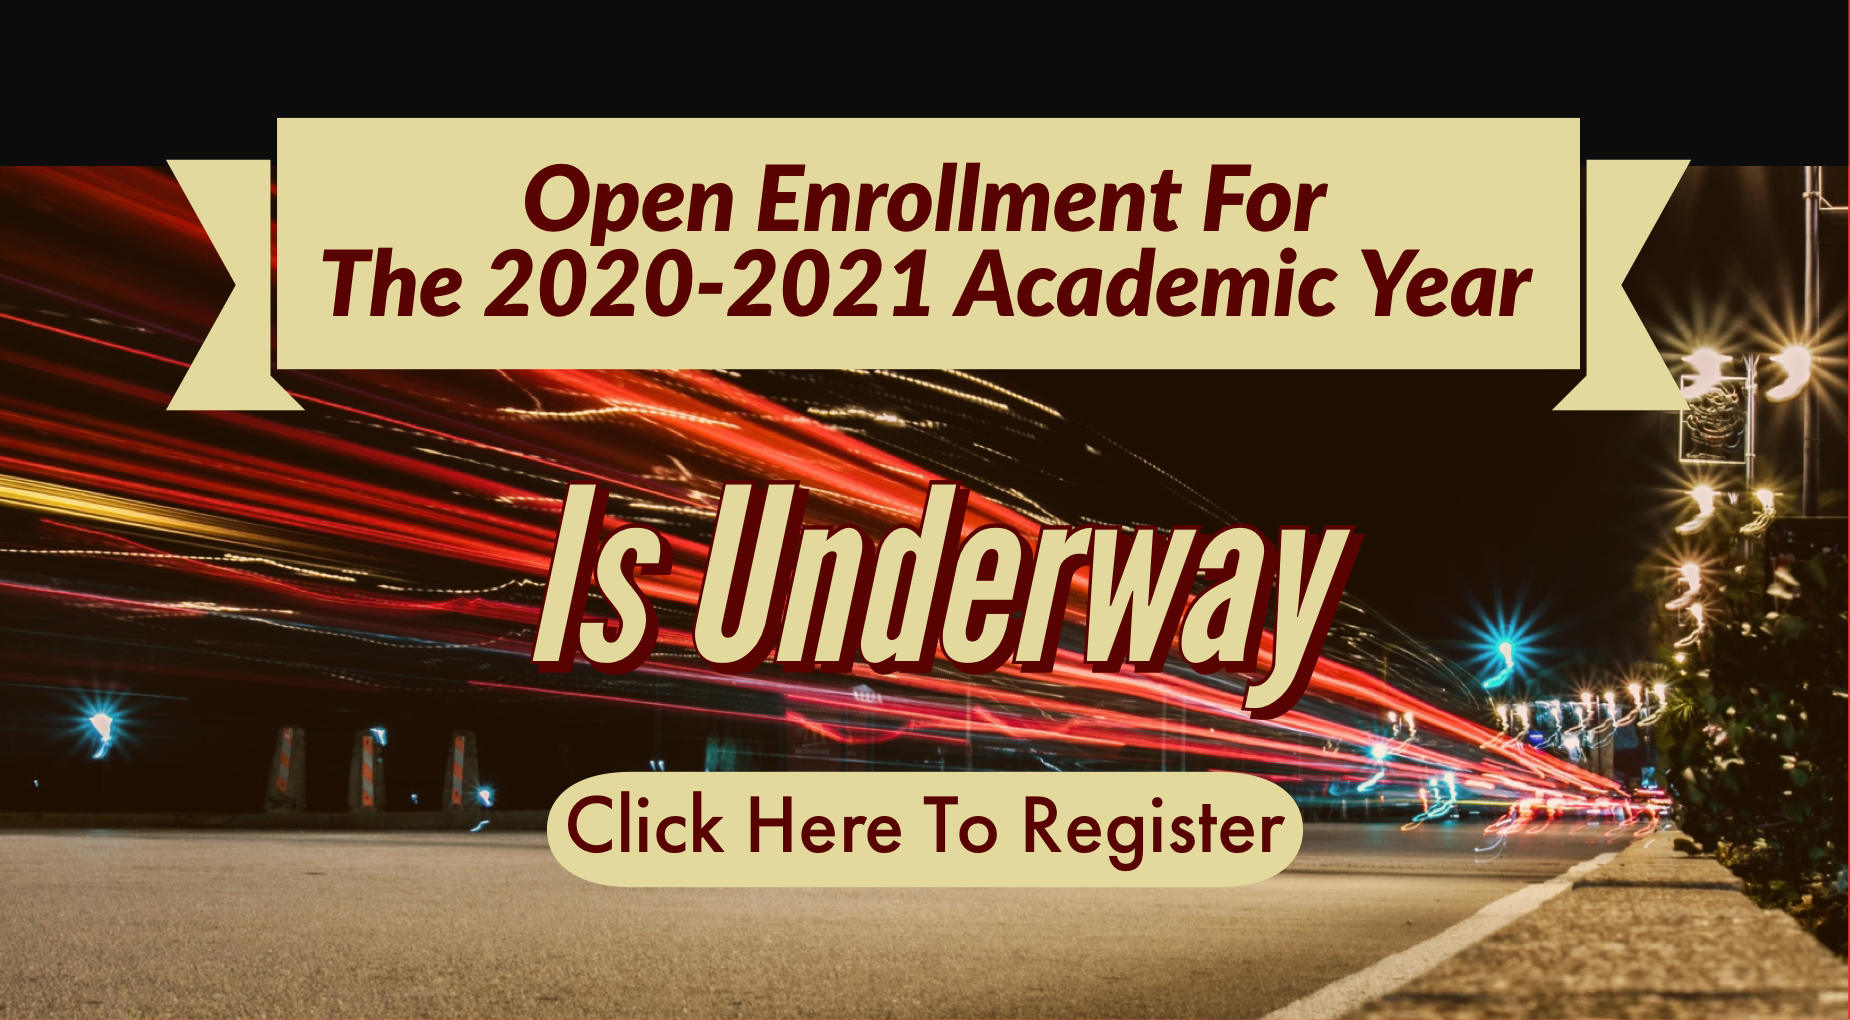 2020-2021 Open Enrollment Underway